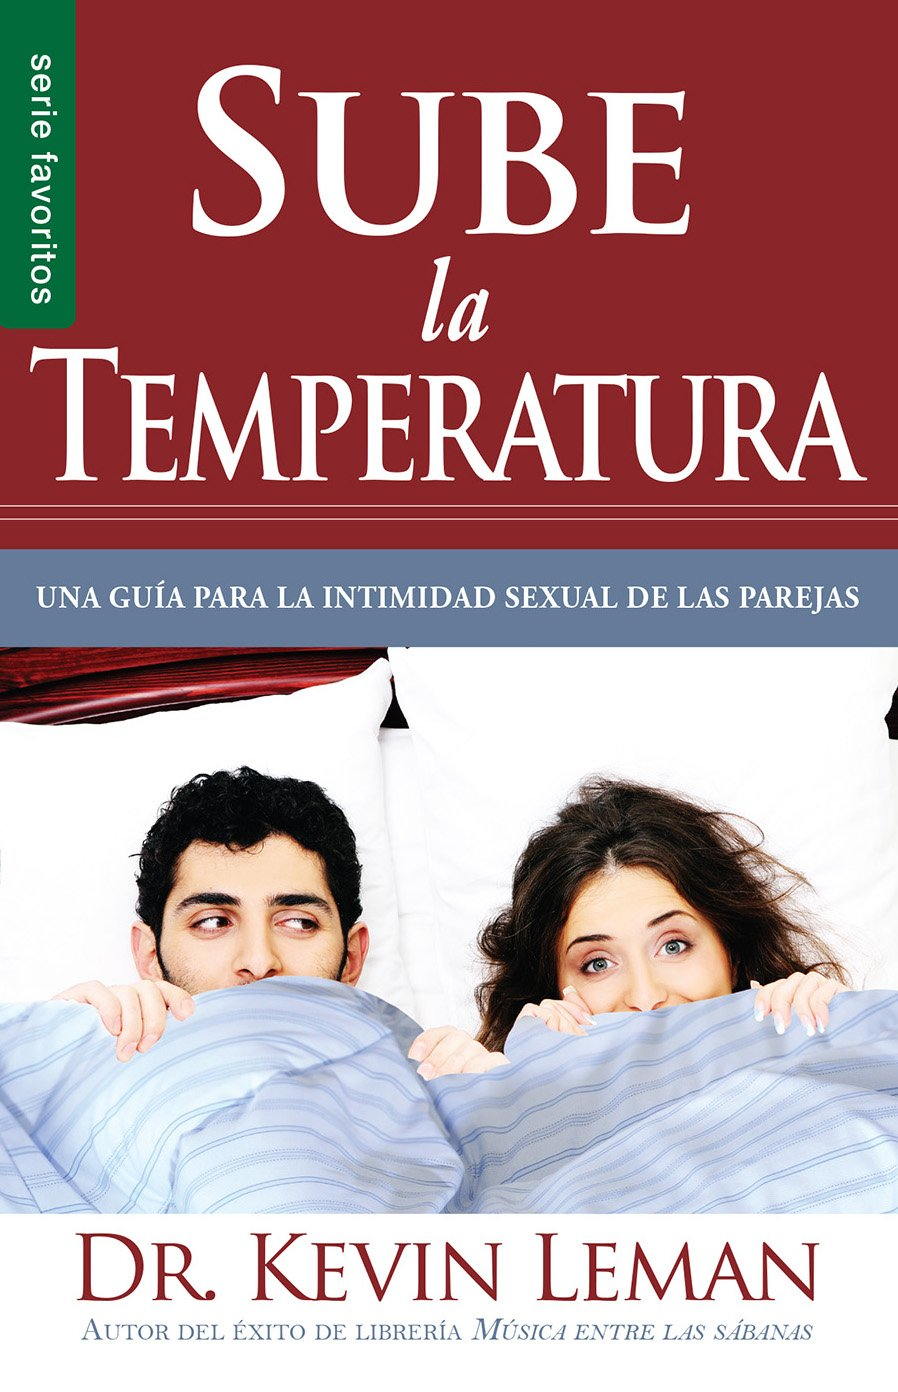 Sube la temperatura spanish edition dr kevin leman sube la temperatura spanish edition dr kevin leman 9780789922700 amazon books fandeluxe Image collections